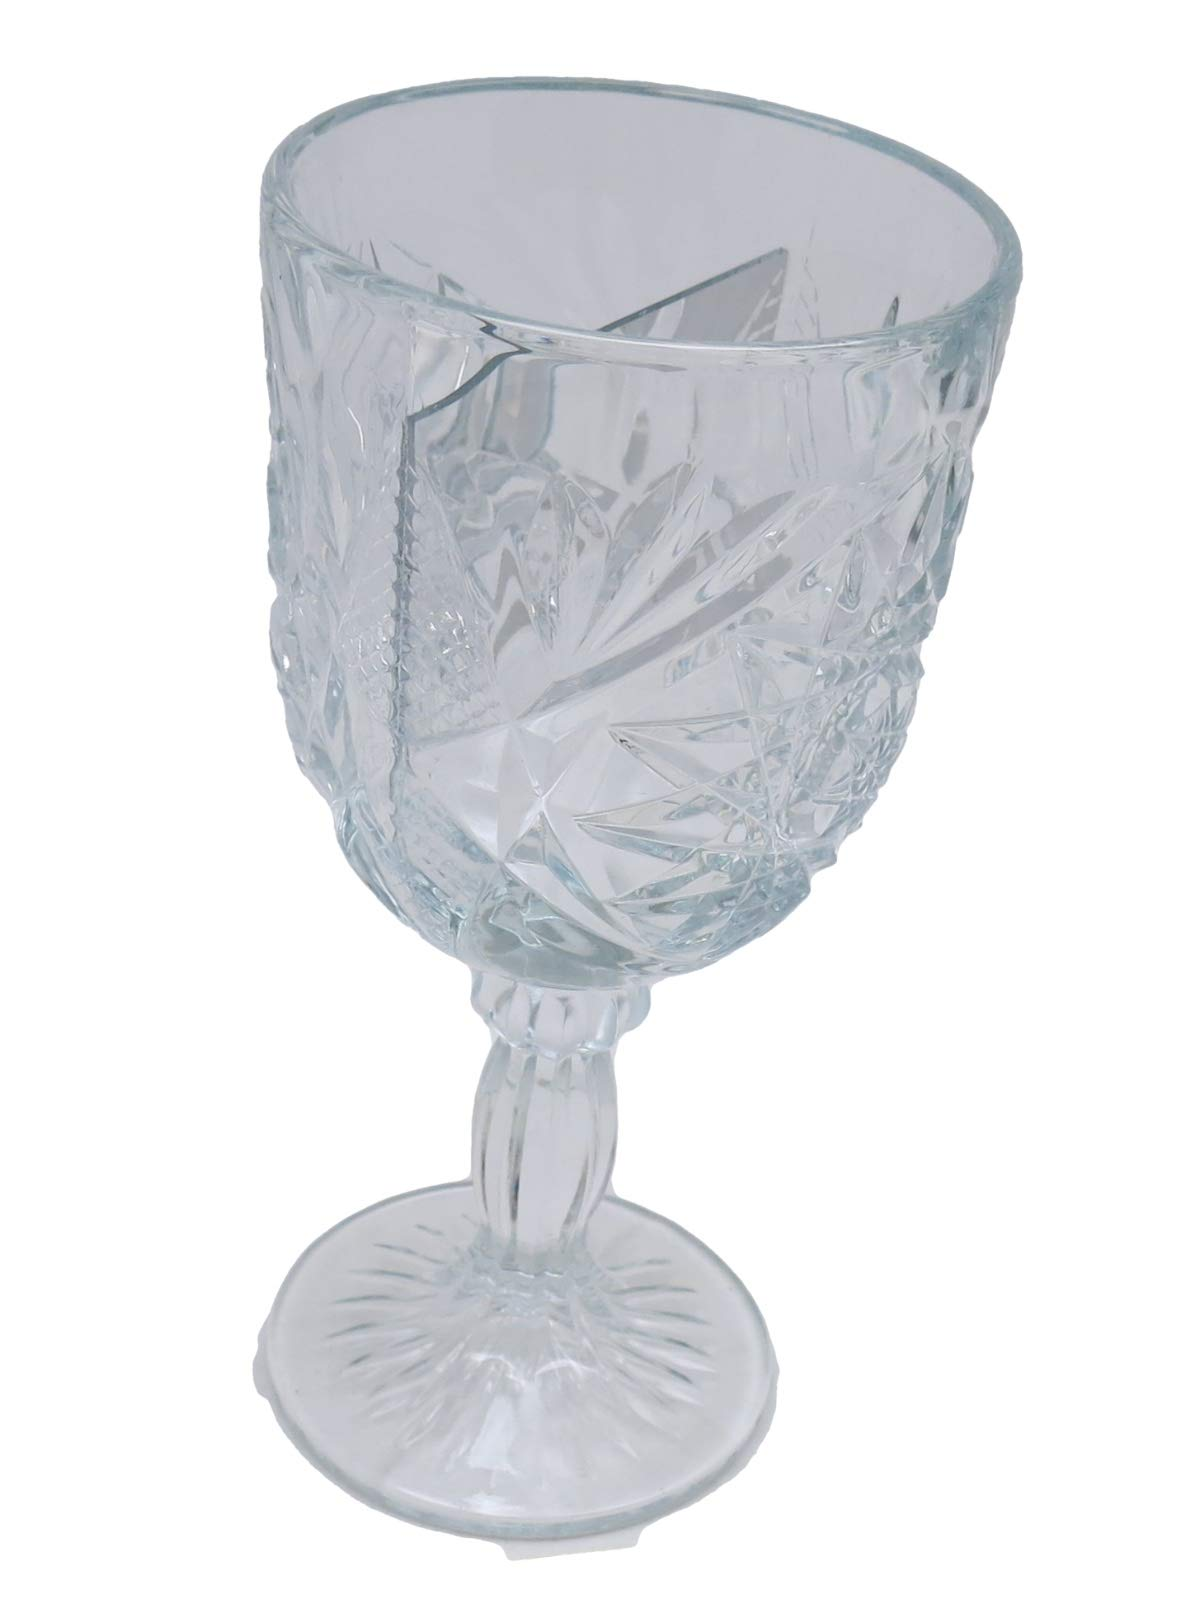 Stage Magic Crystal Mirror Goblet / Magic Tricks/Magic Props by Stage Magic